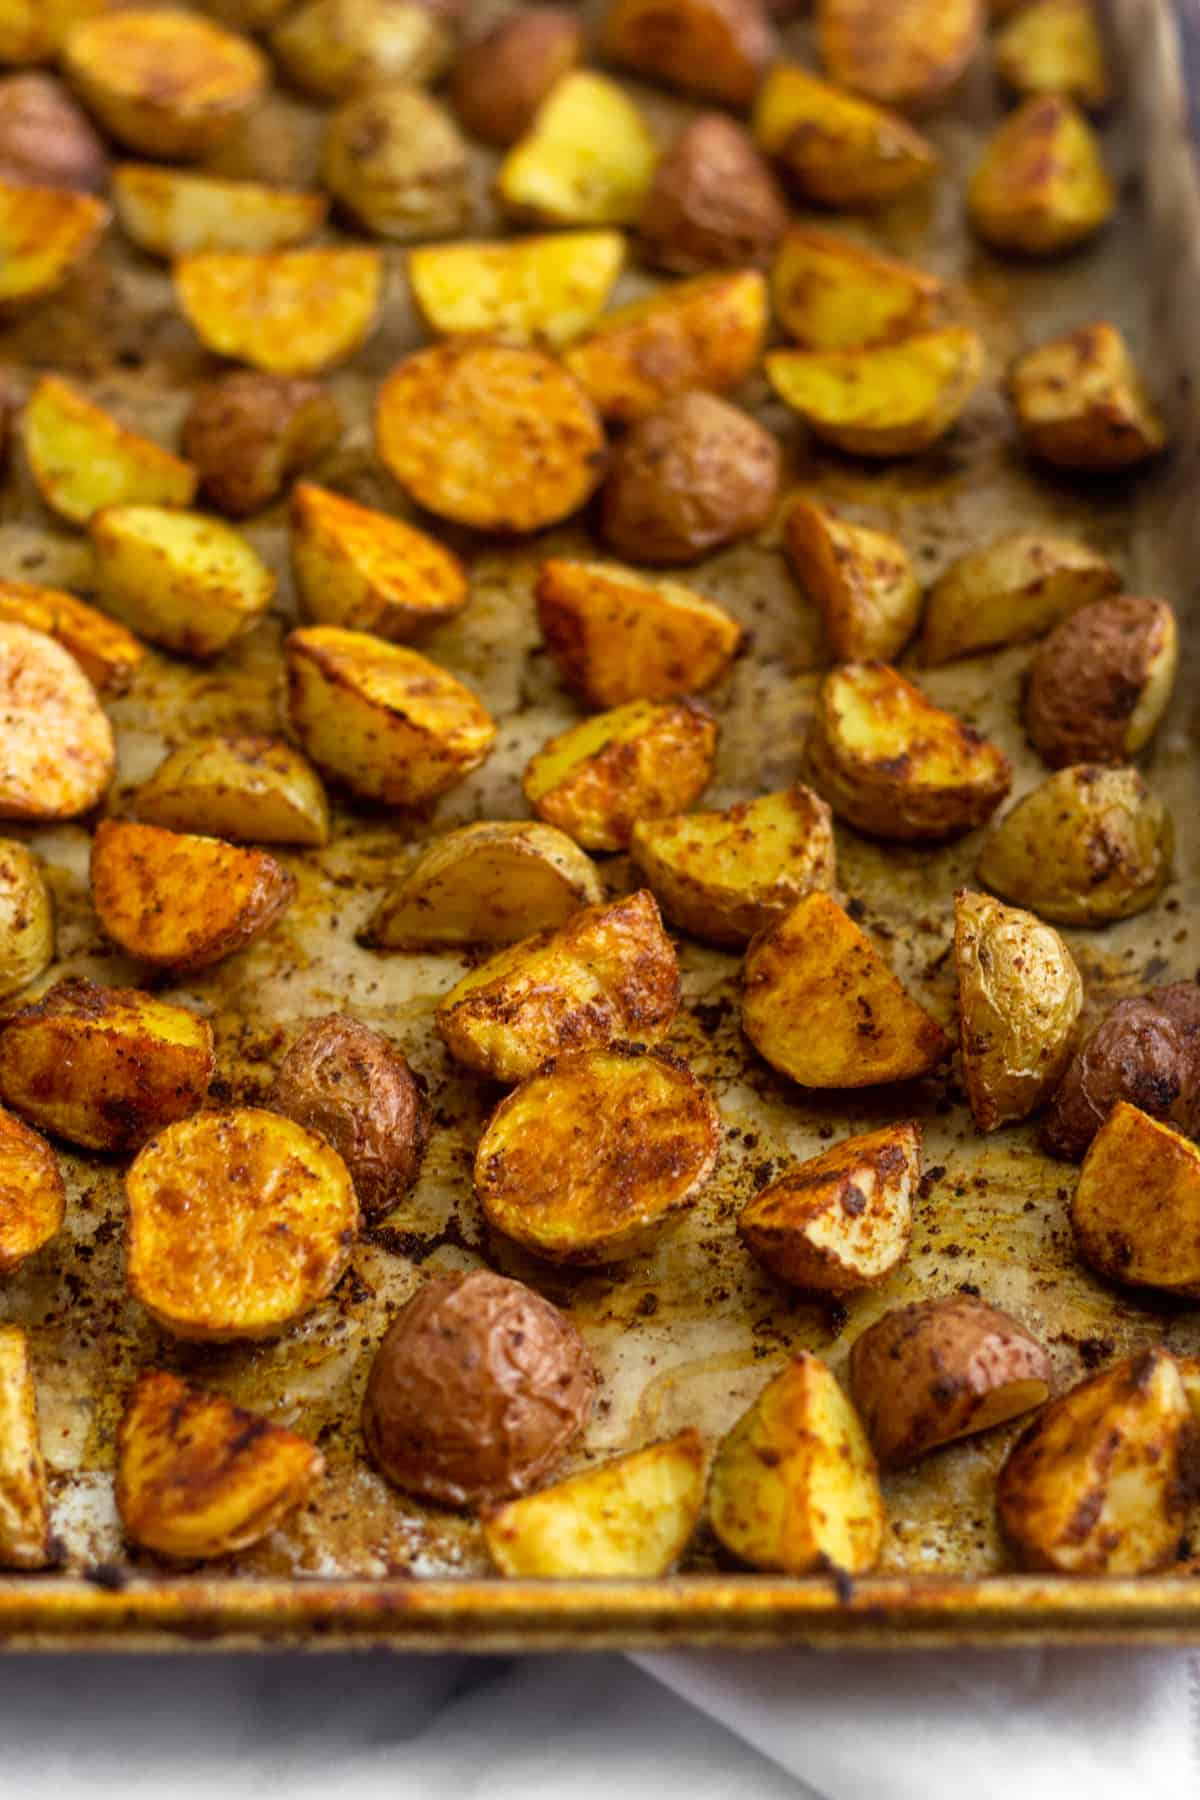 Baking sheet filled with golden brown crispy roasted breakfast potatoes